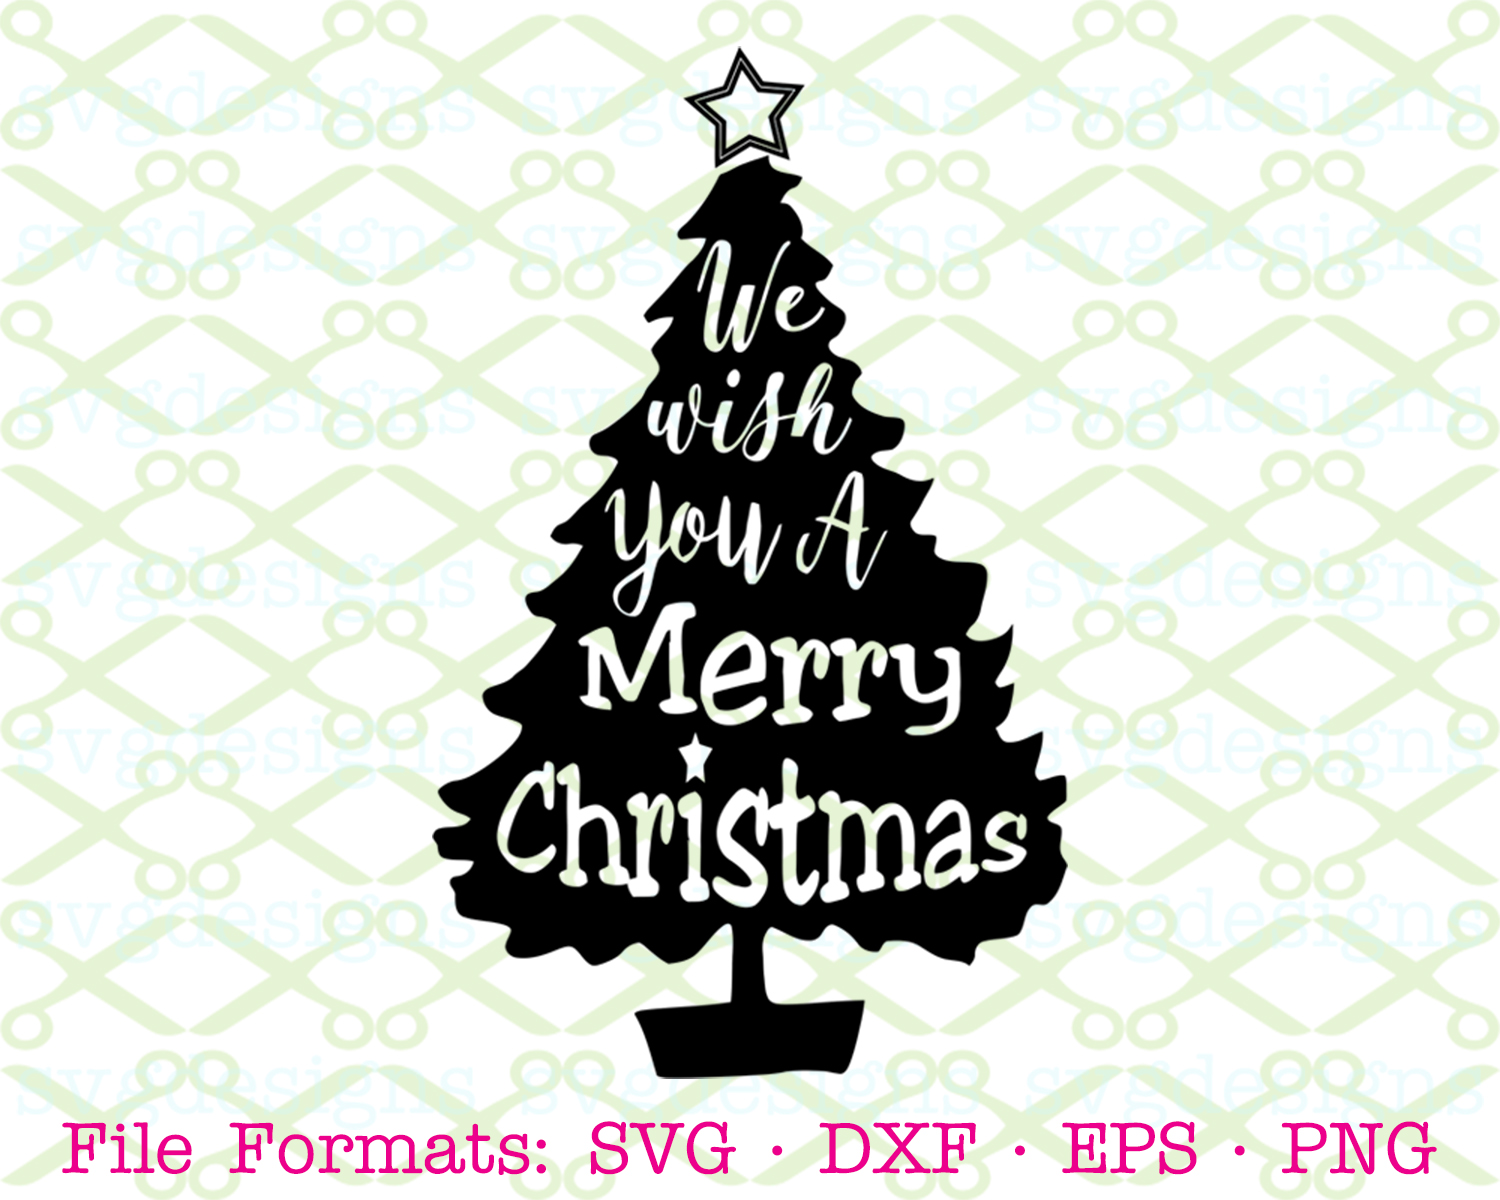 Christmas Tree Svg File Cricut Silhouette Files Svg Dxf Eps Png Monogramsvg Com By Svg Designs